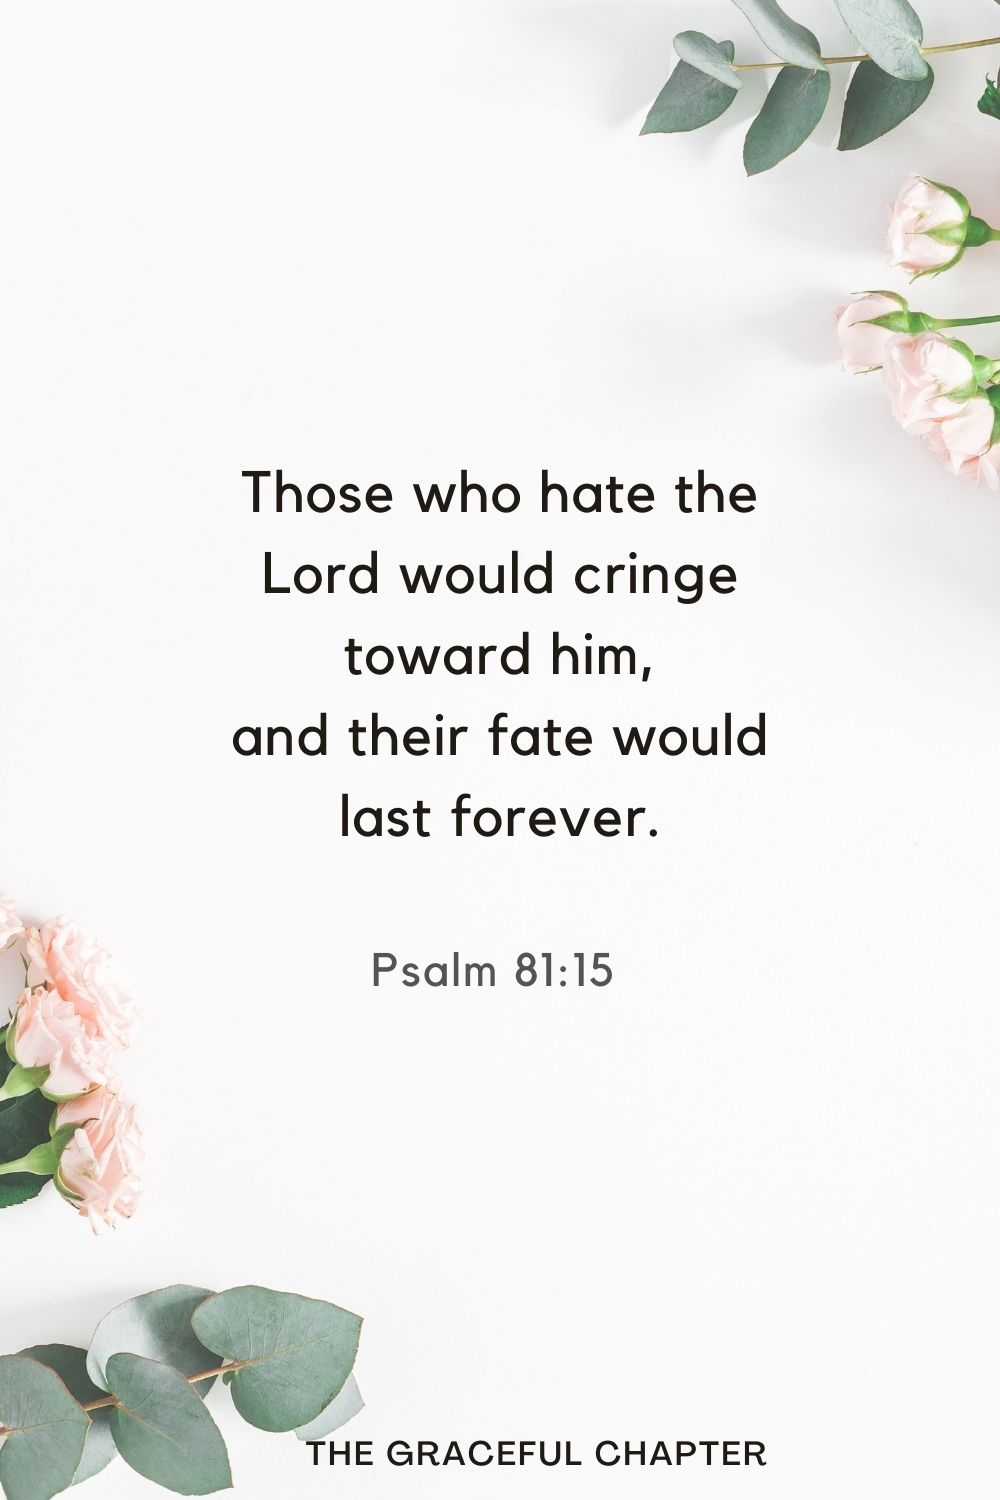 Those who hate the Lord would cringe toward him, and their fate would last forever. Psalm 81:15